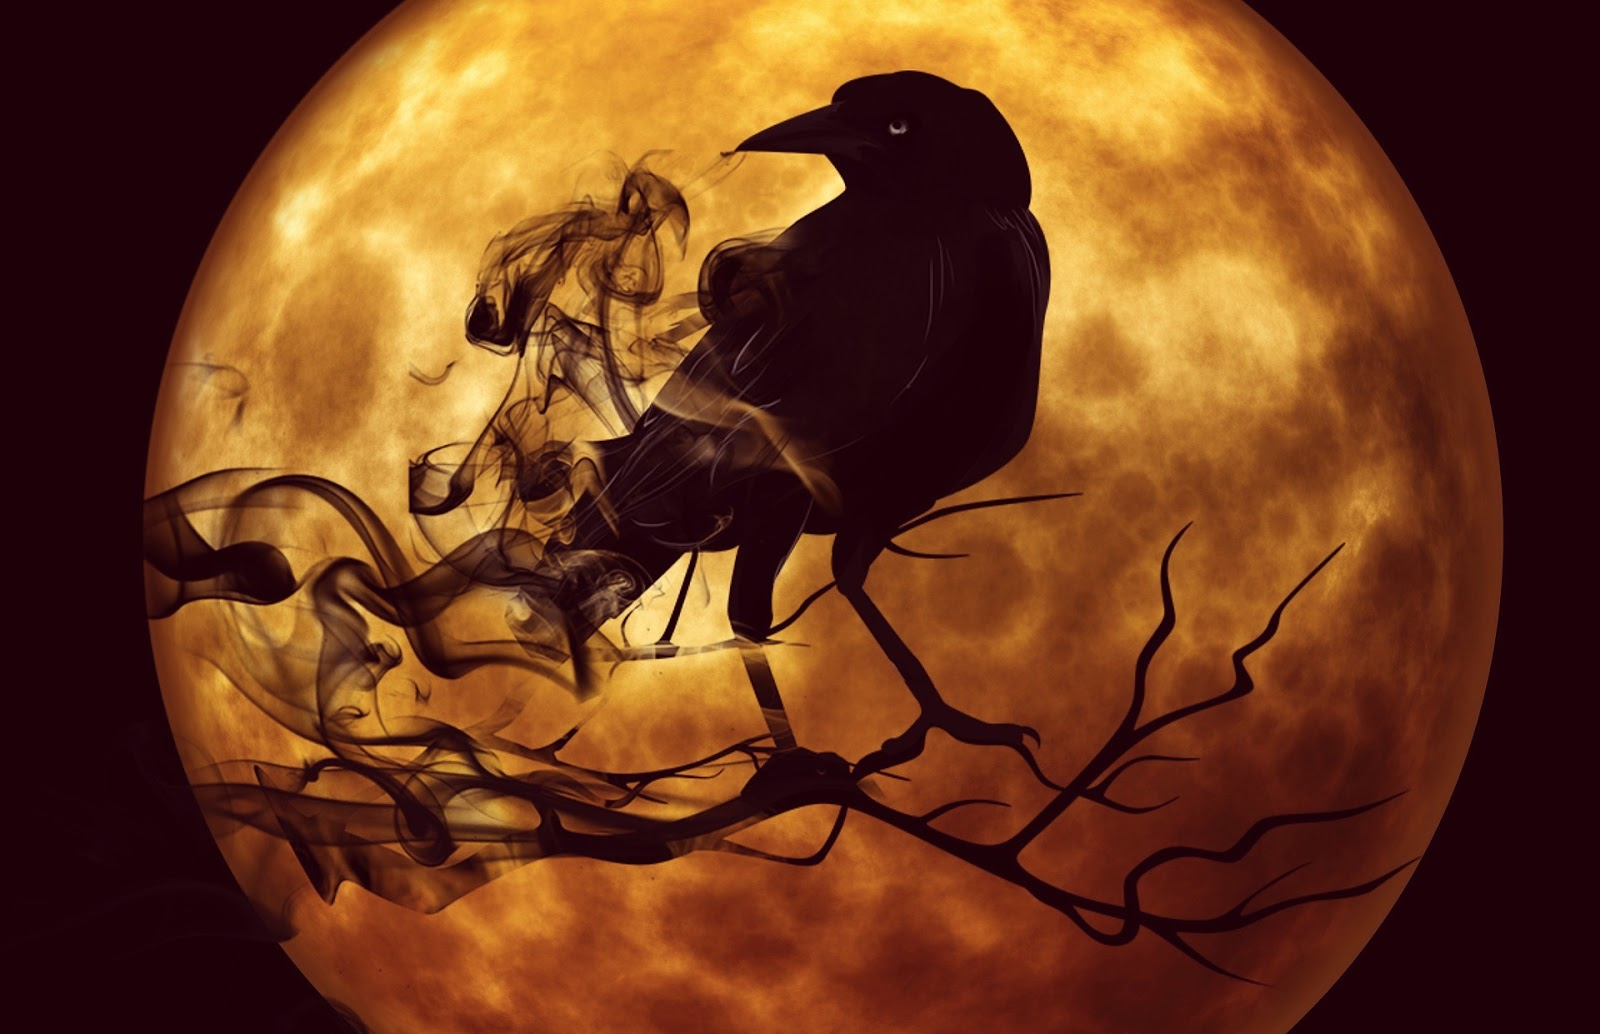 Splinters in time samhain blessings samhain blessings to all my friends and family m4hsunfo